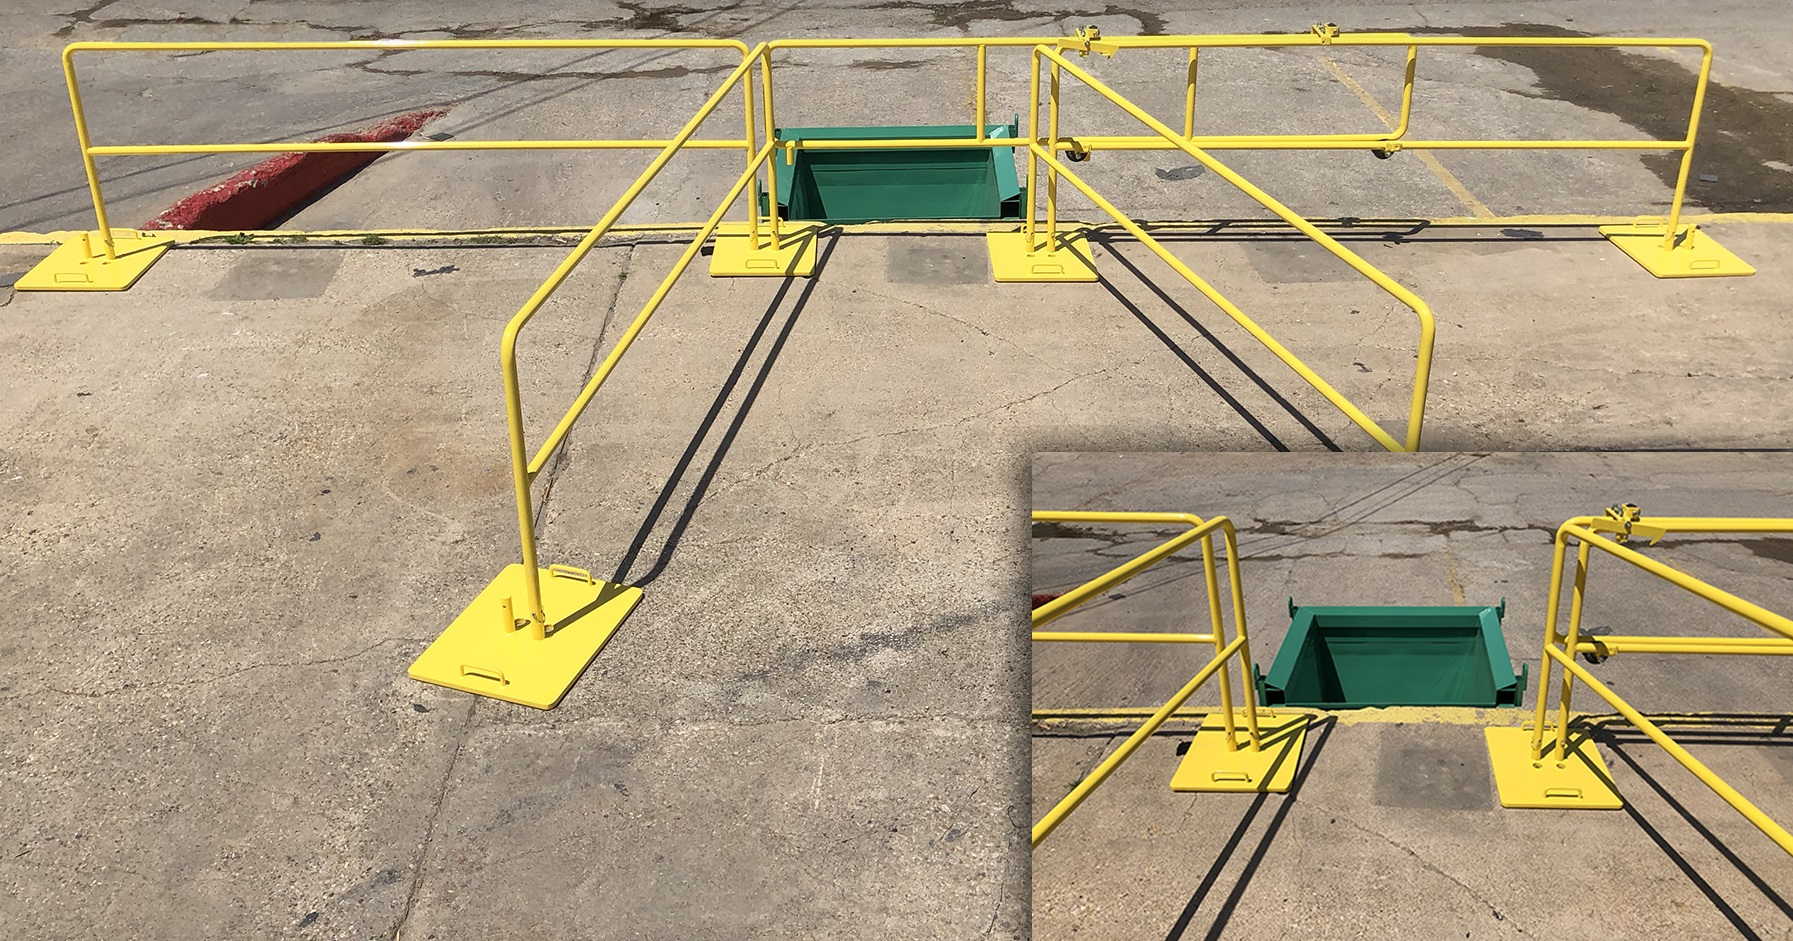 SafePro Perimeter Rail Chute Guard